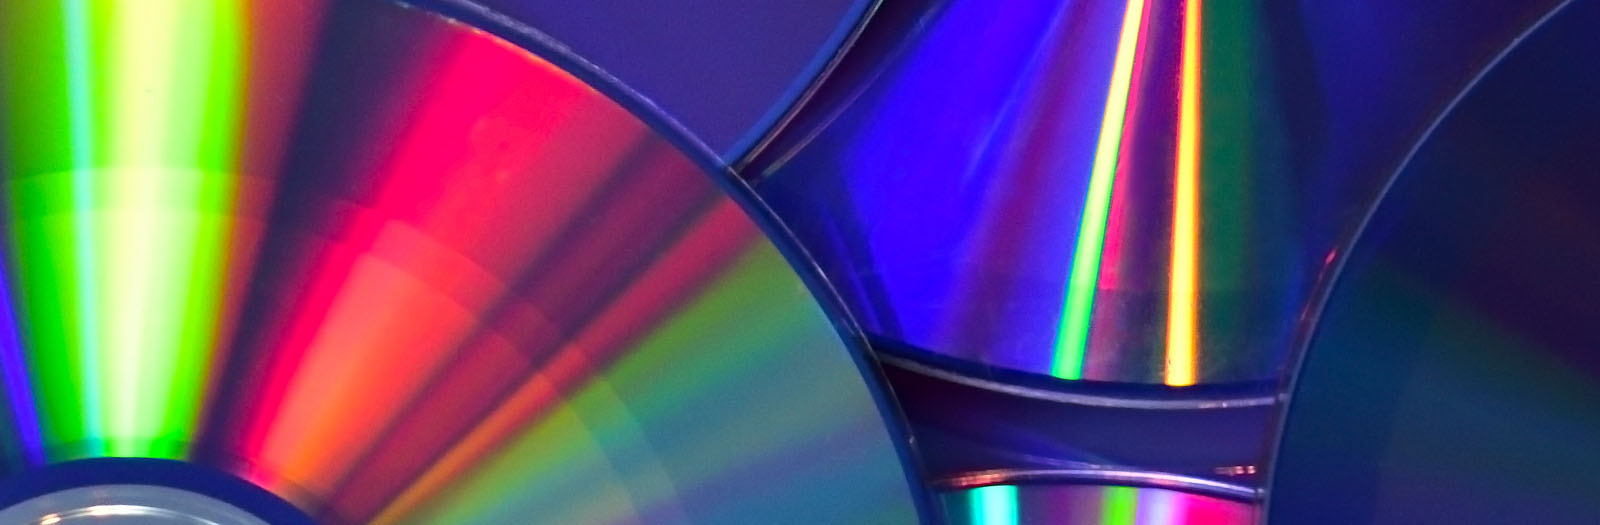 Photo of colorful compact discs